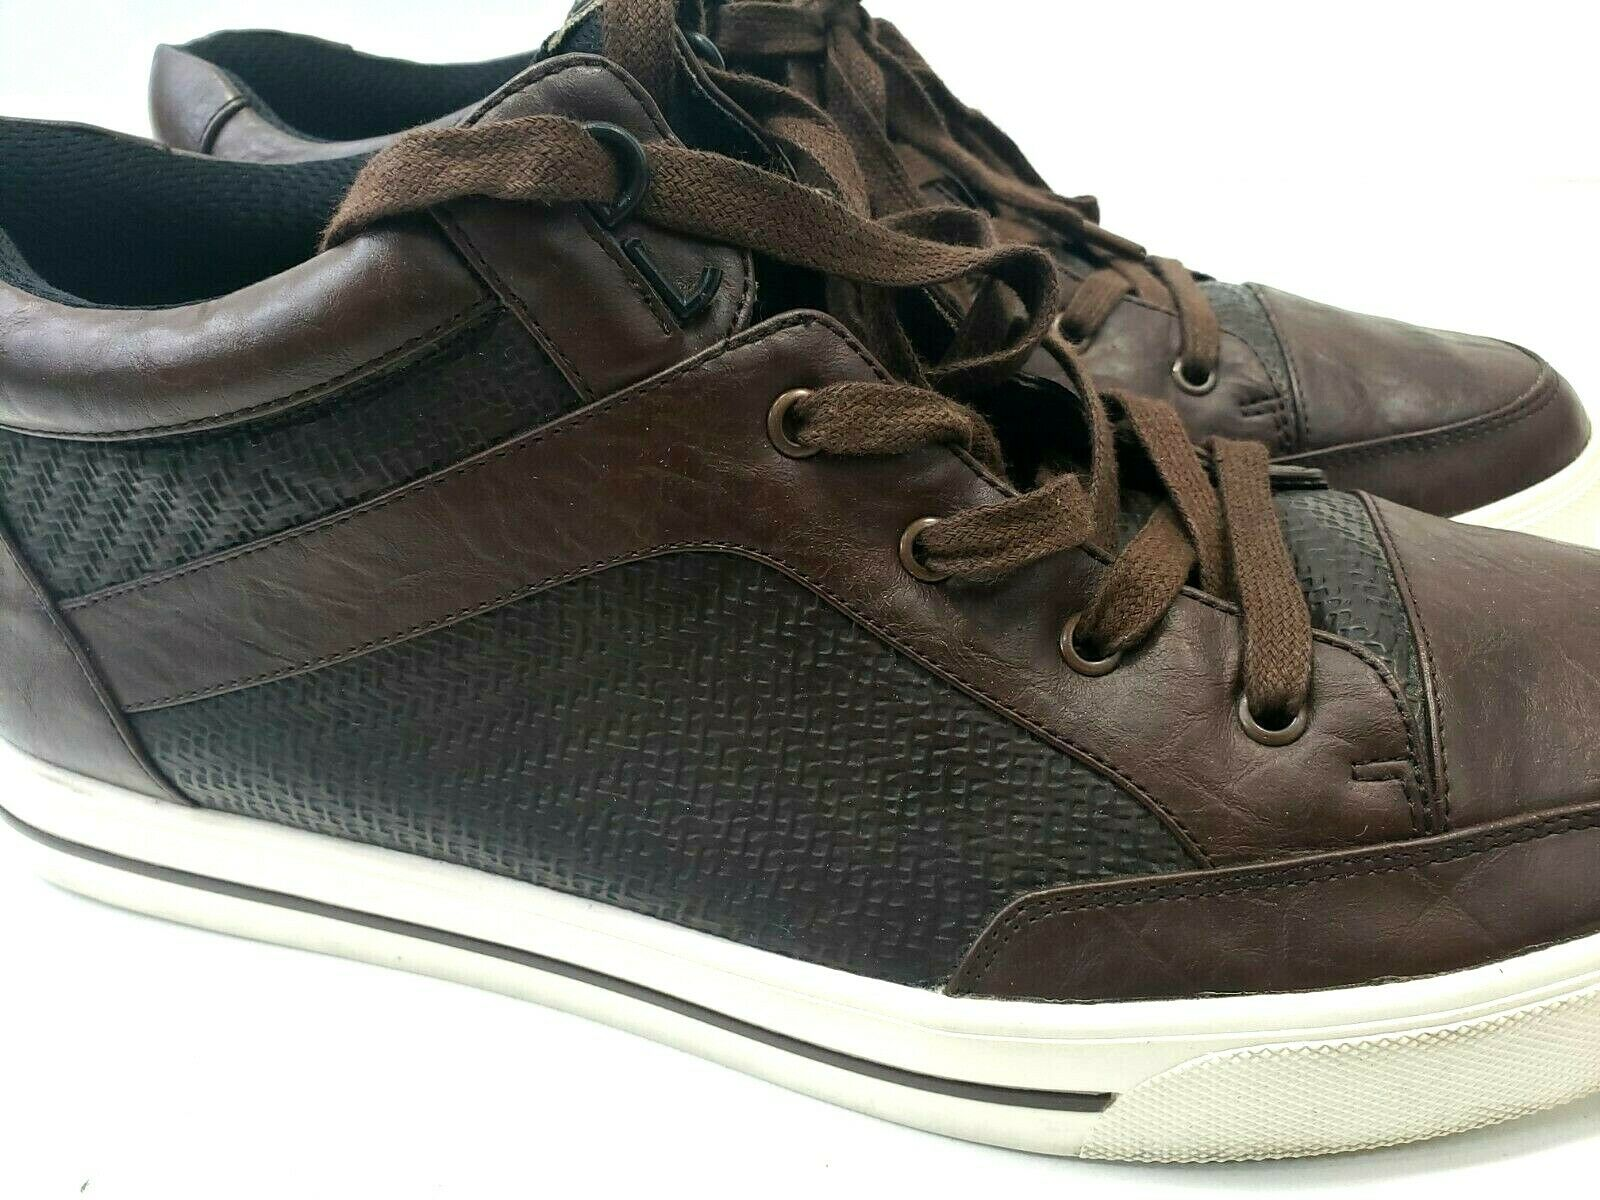 Armani jeans mens sneakers shoes casual leather size 10